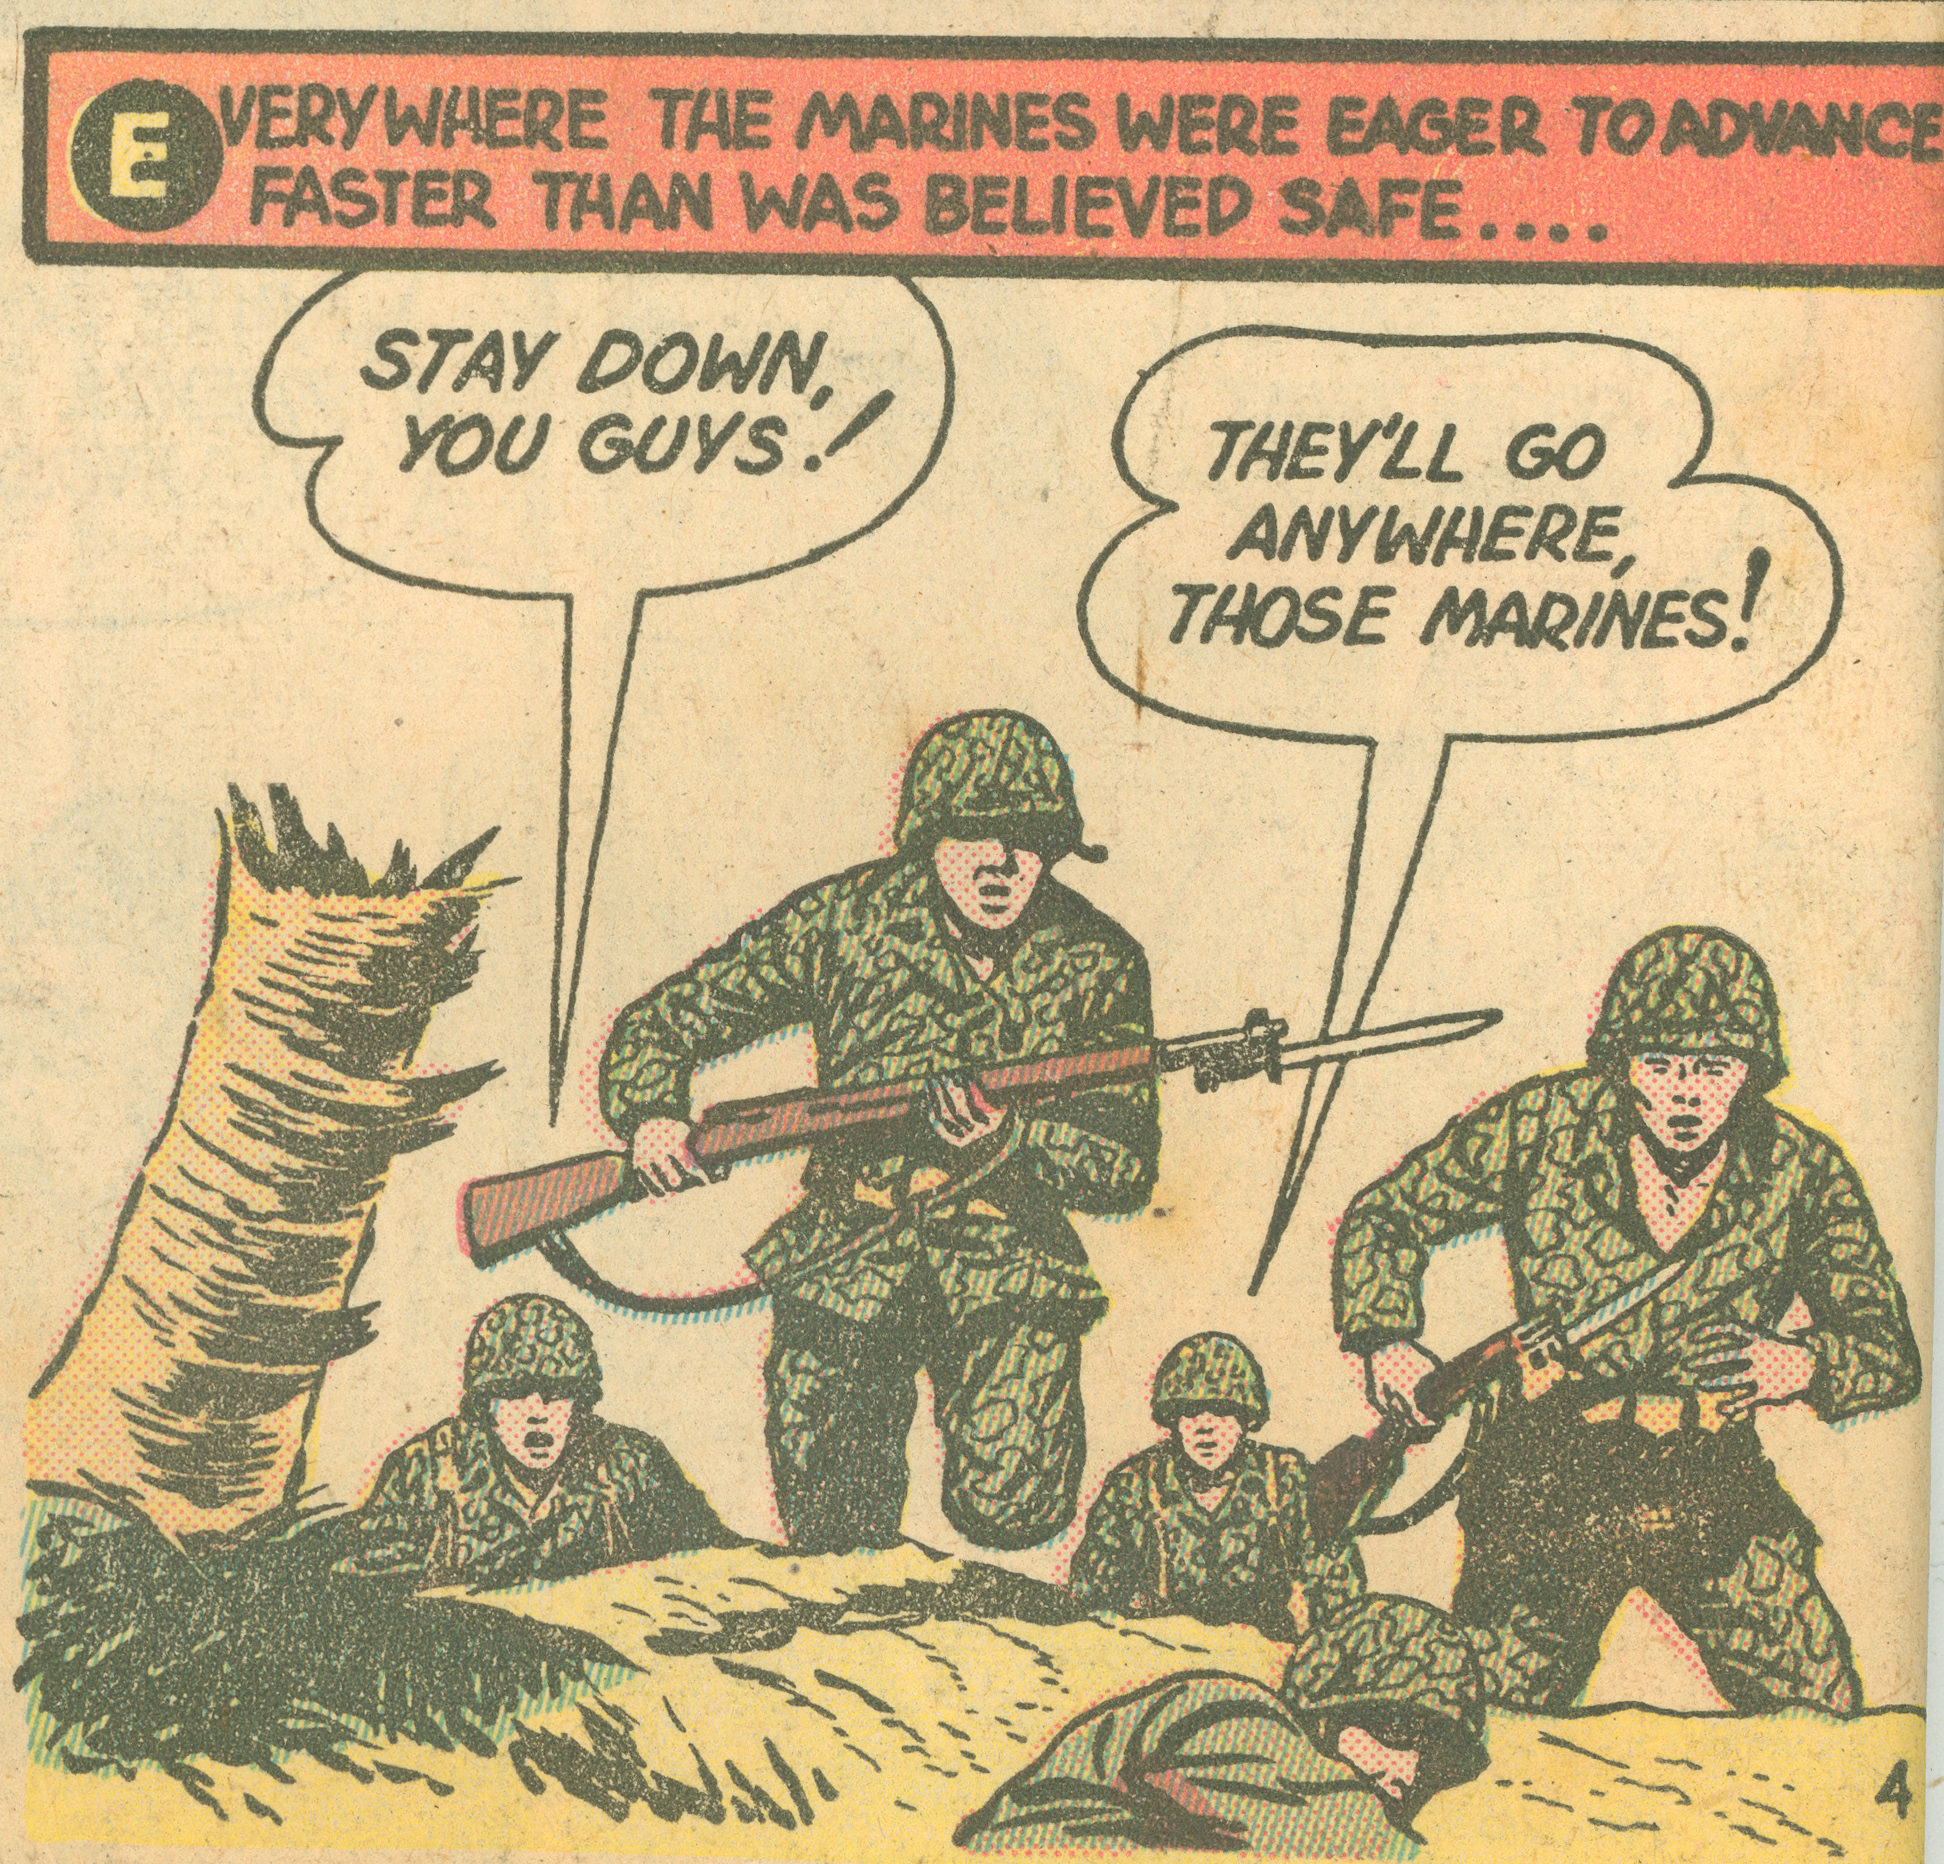 Panel from 1943 comic book